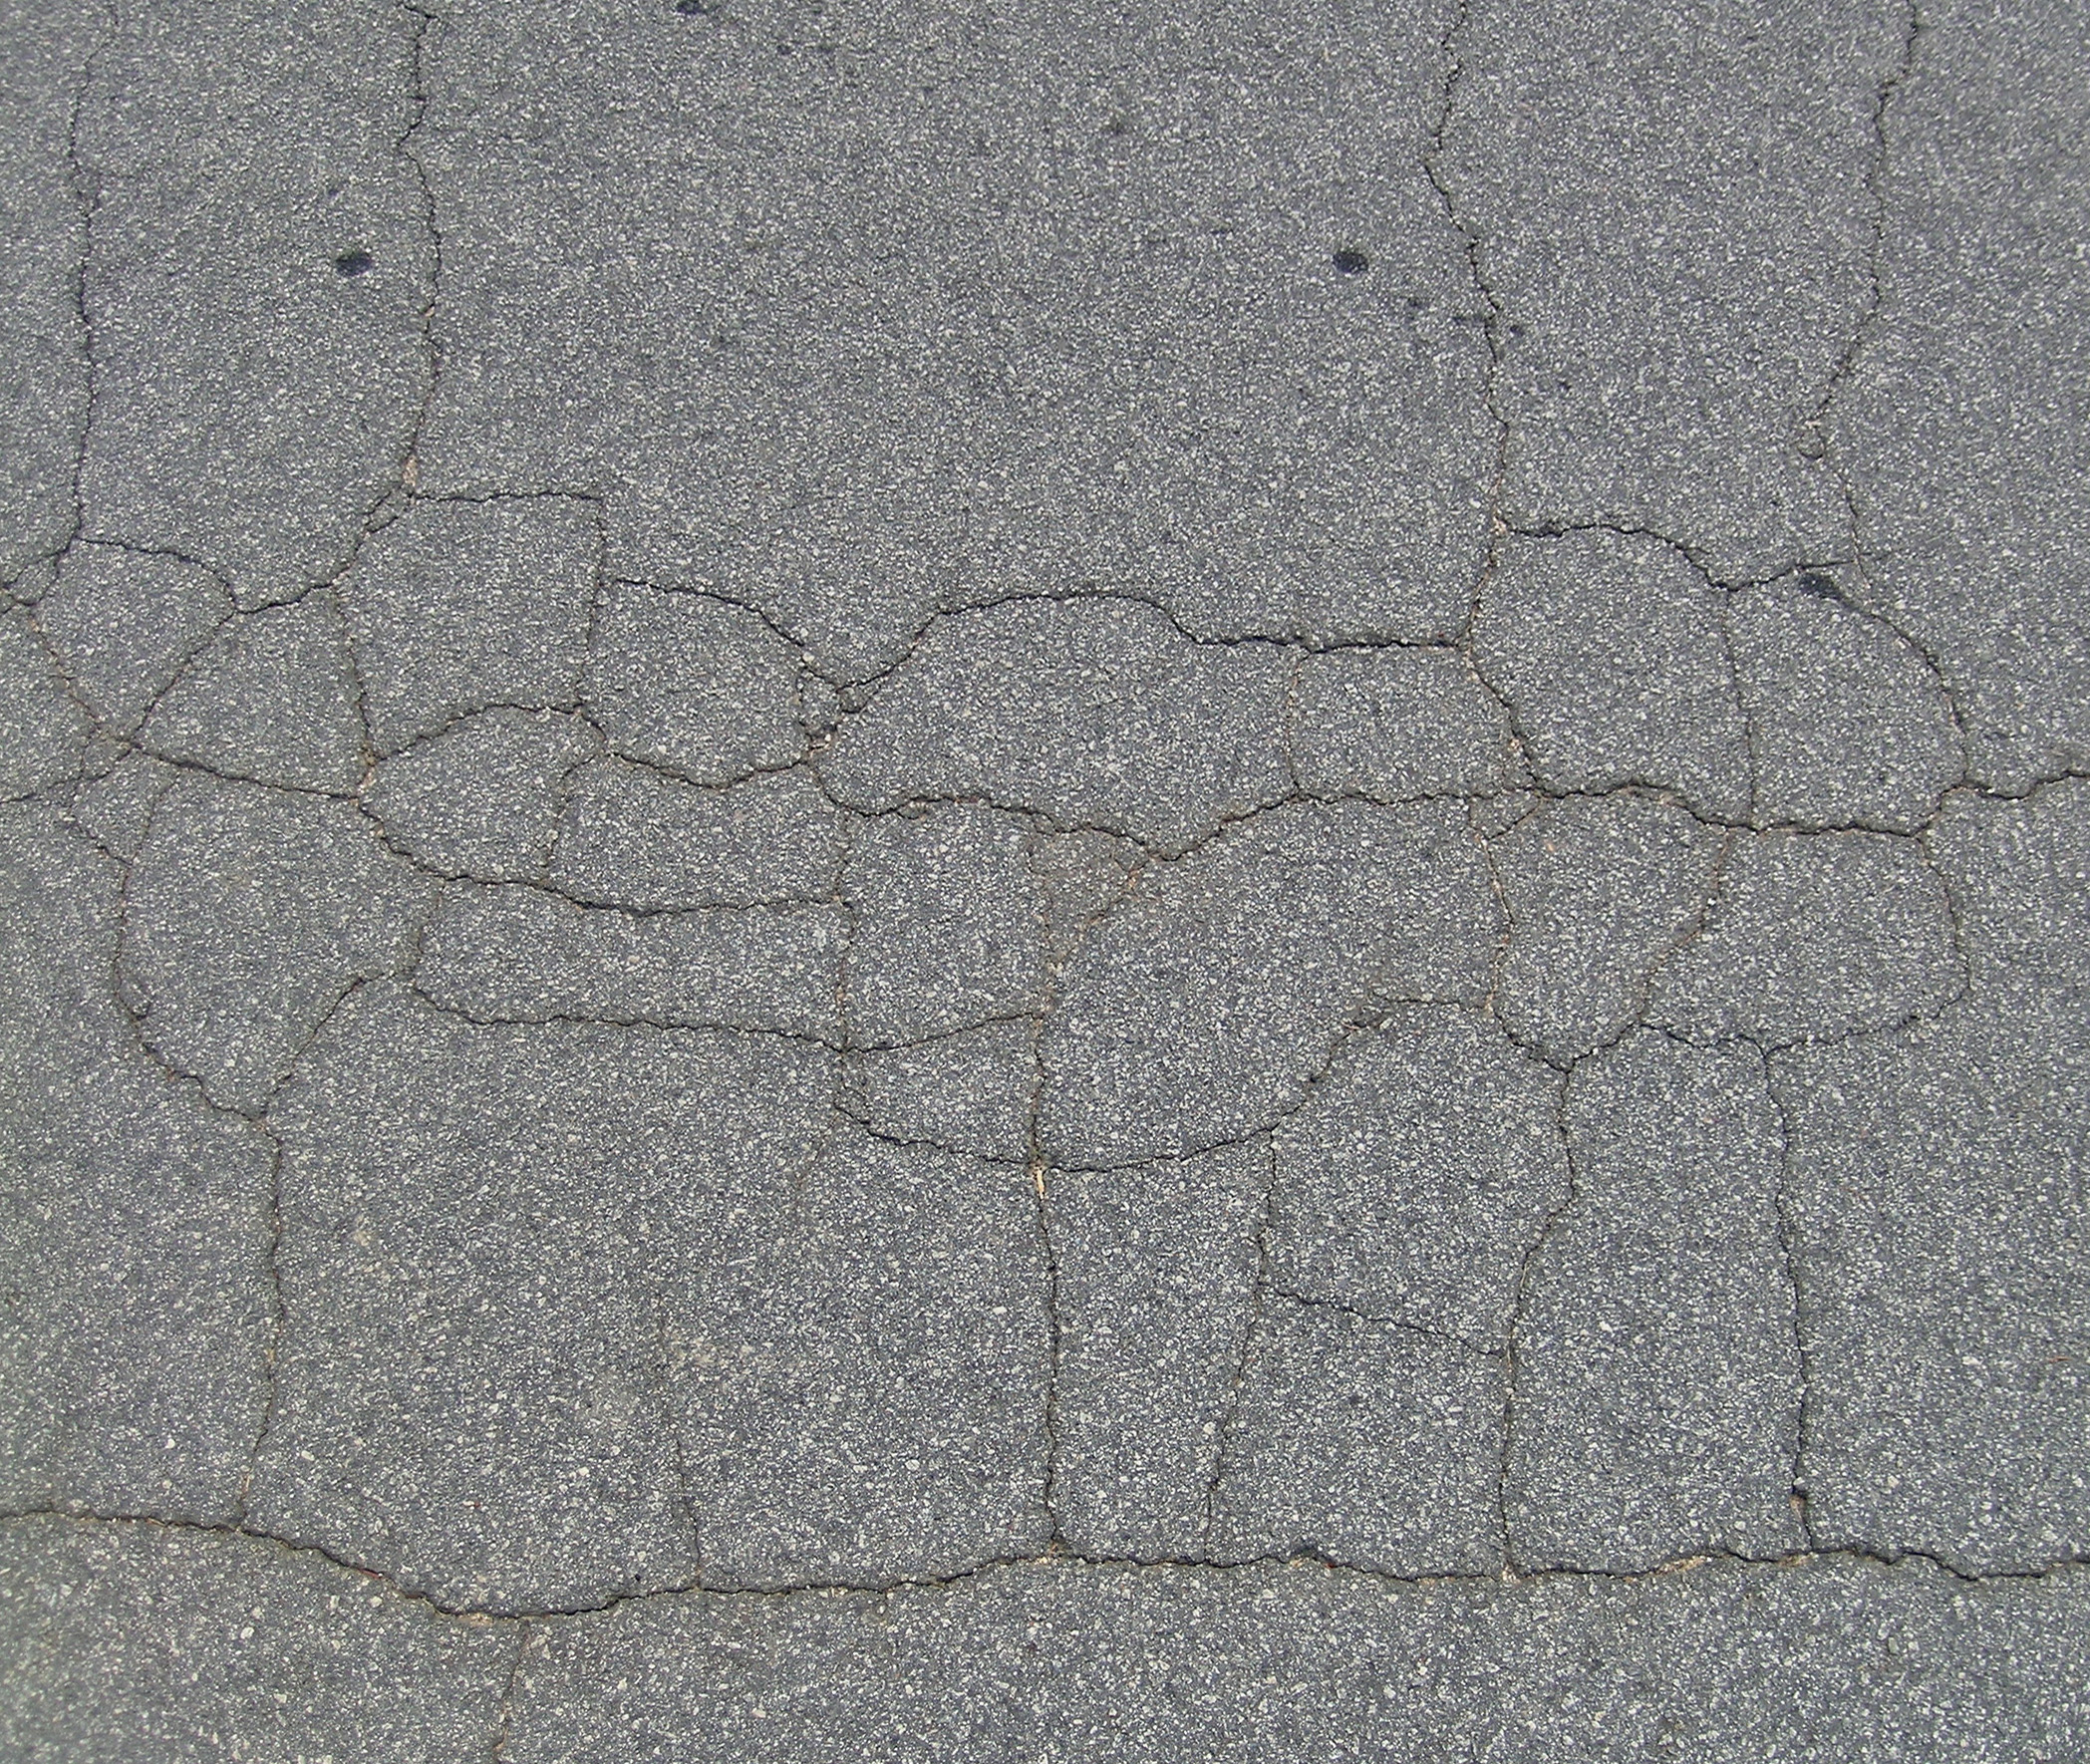 Asphalt texture photo